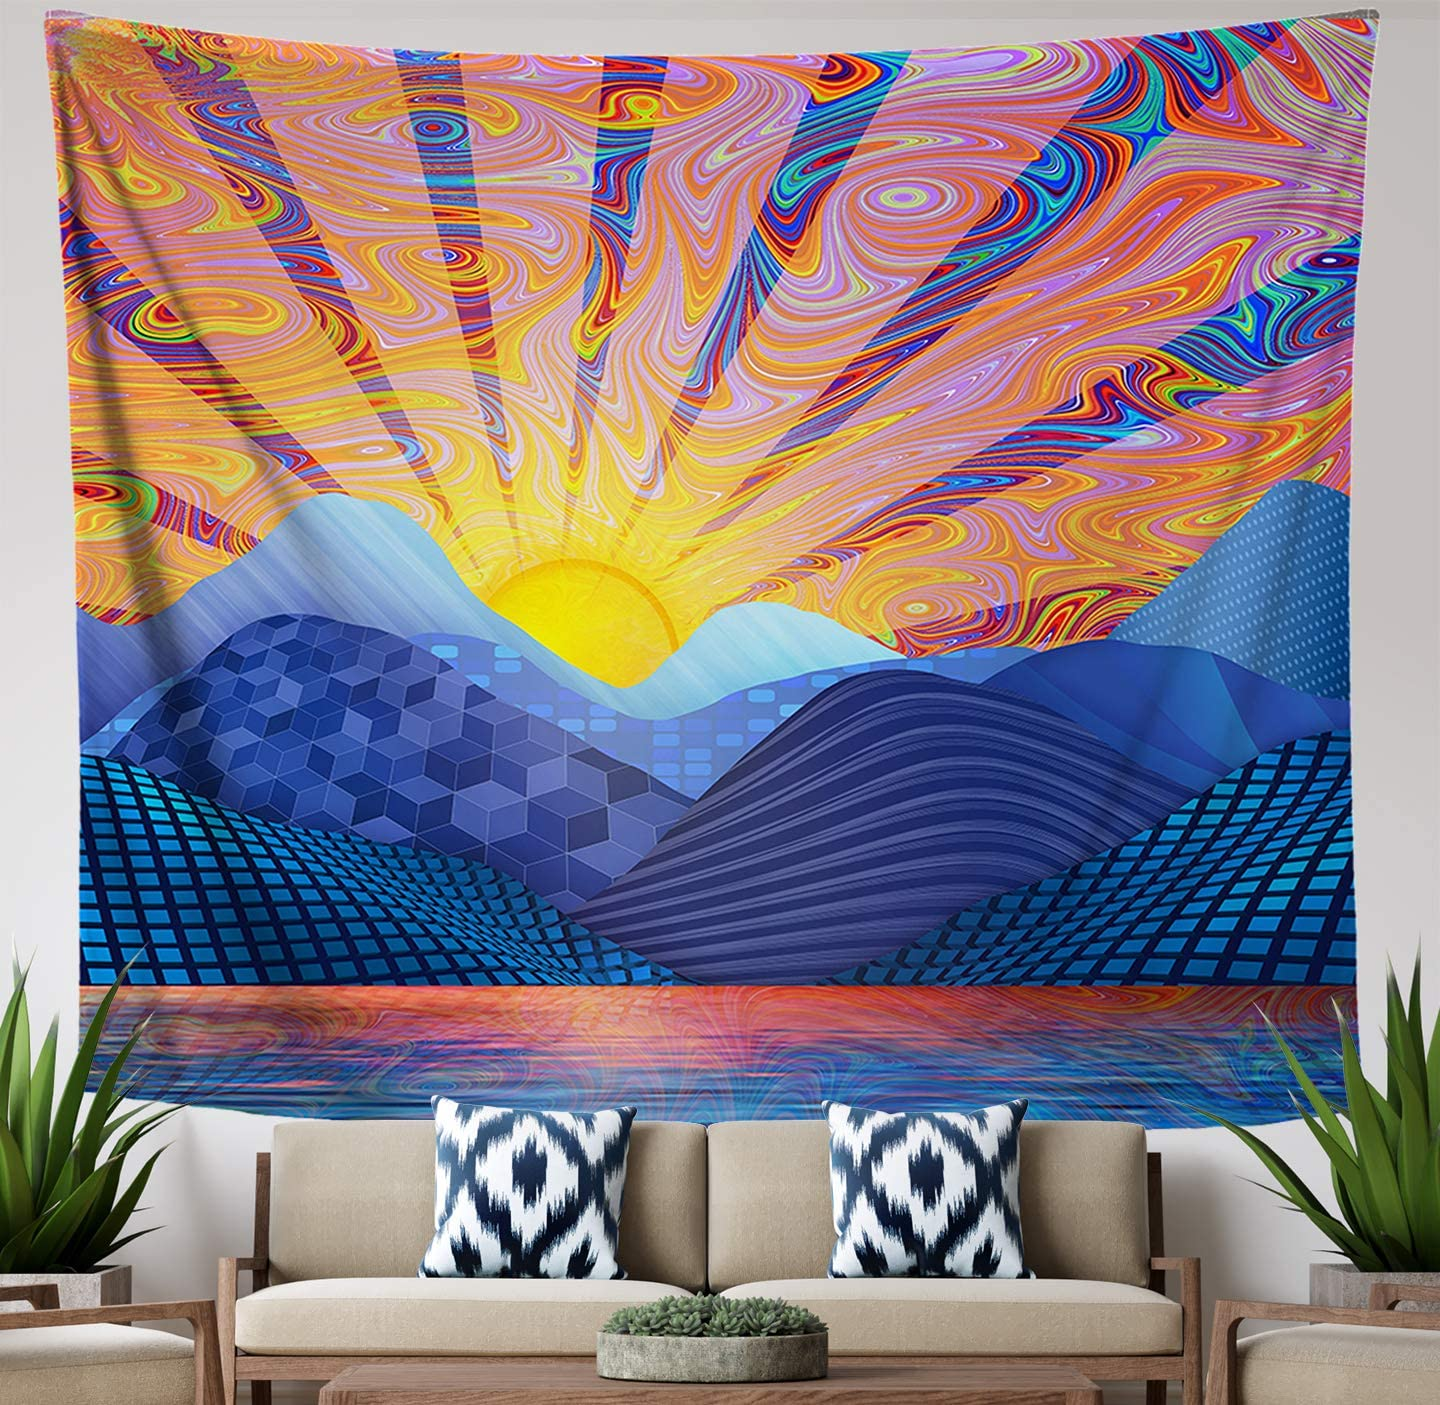 Lucid Eye Psychedelic Sunrise Tapestry, Blue Mountain Trippy Landscape Wall Hanging for Bedroom Living Room Dorm, Large 84×72 inches